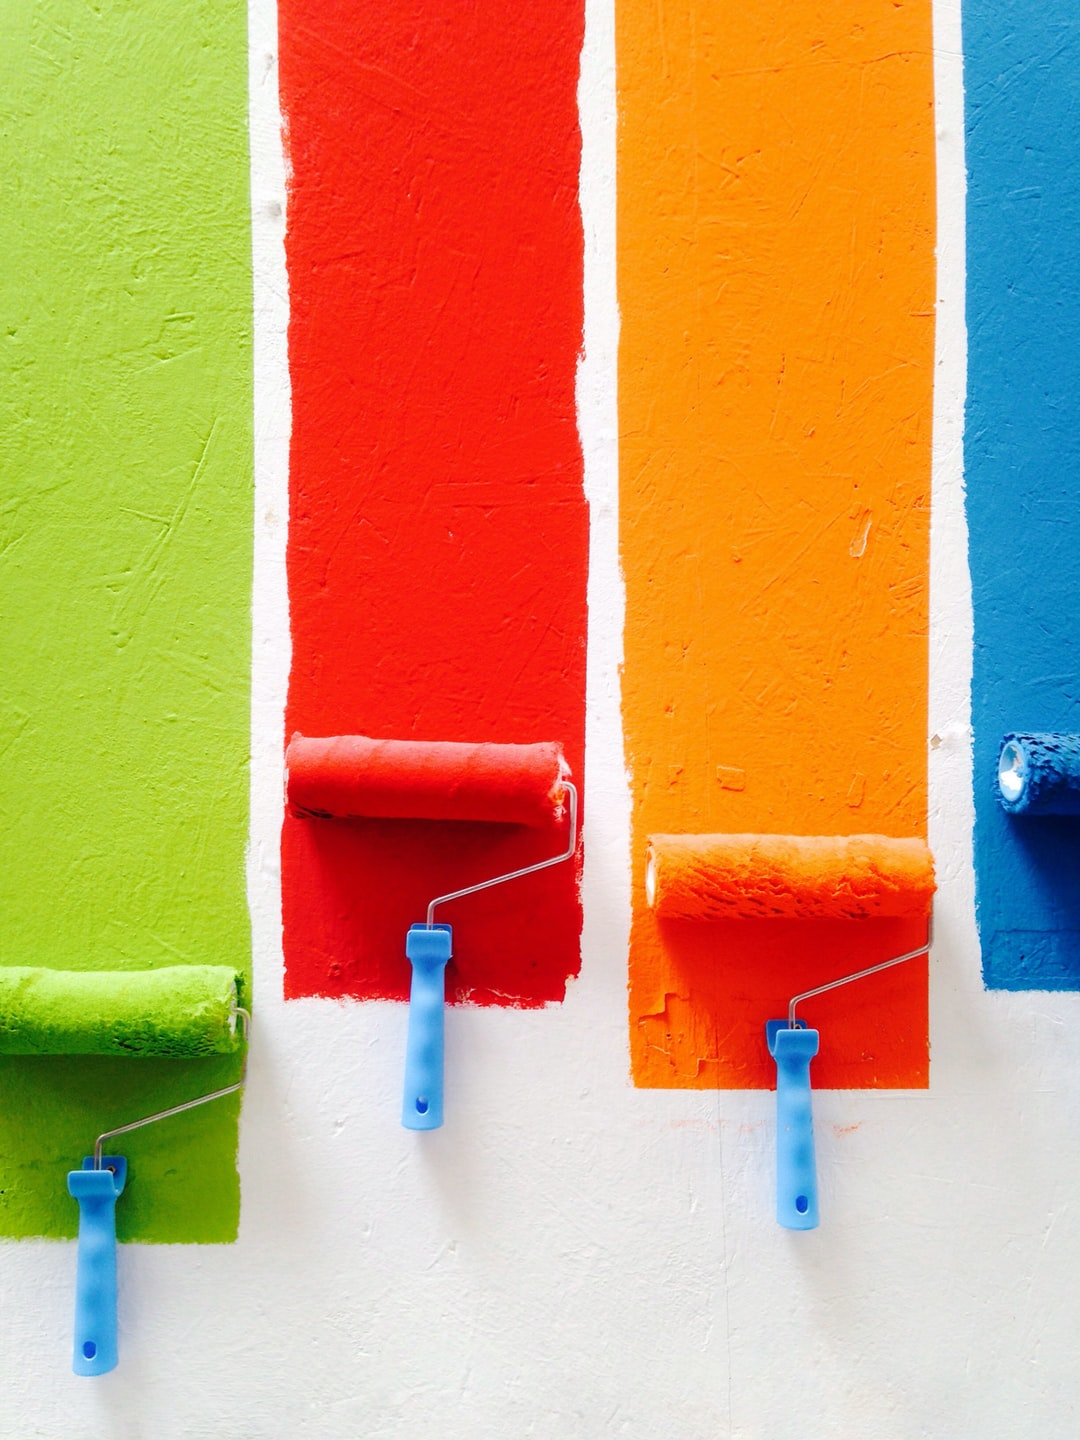 7 Key Advantages of Hiring Professional Painters to Paint a Home